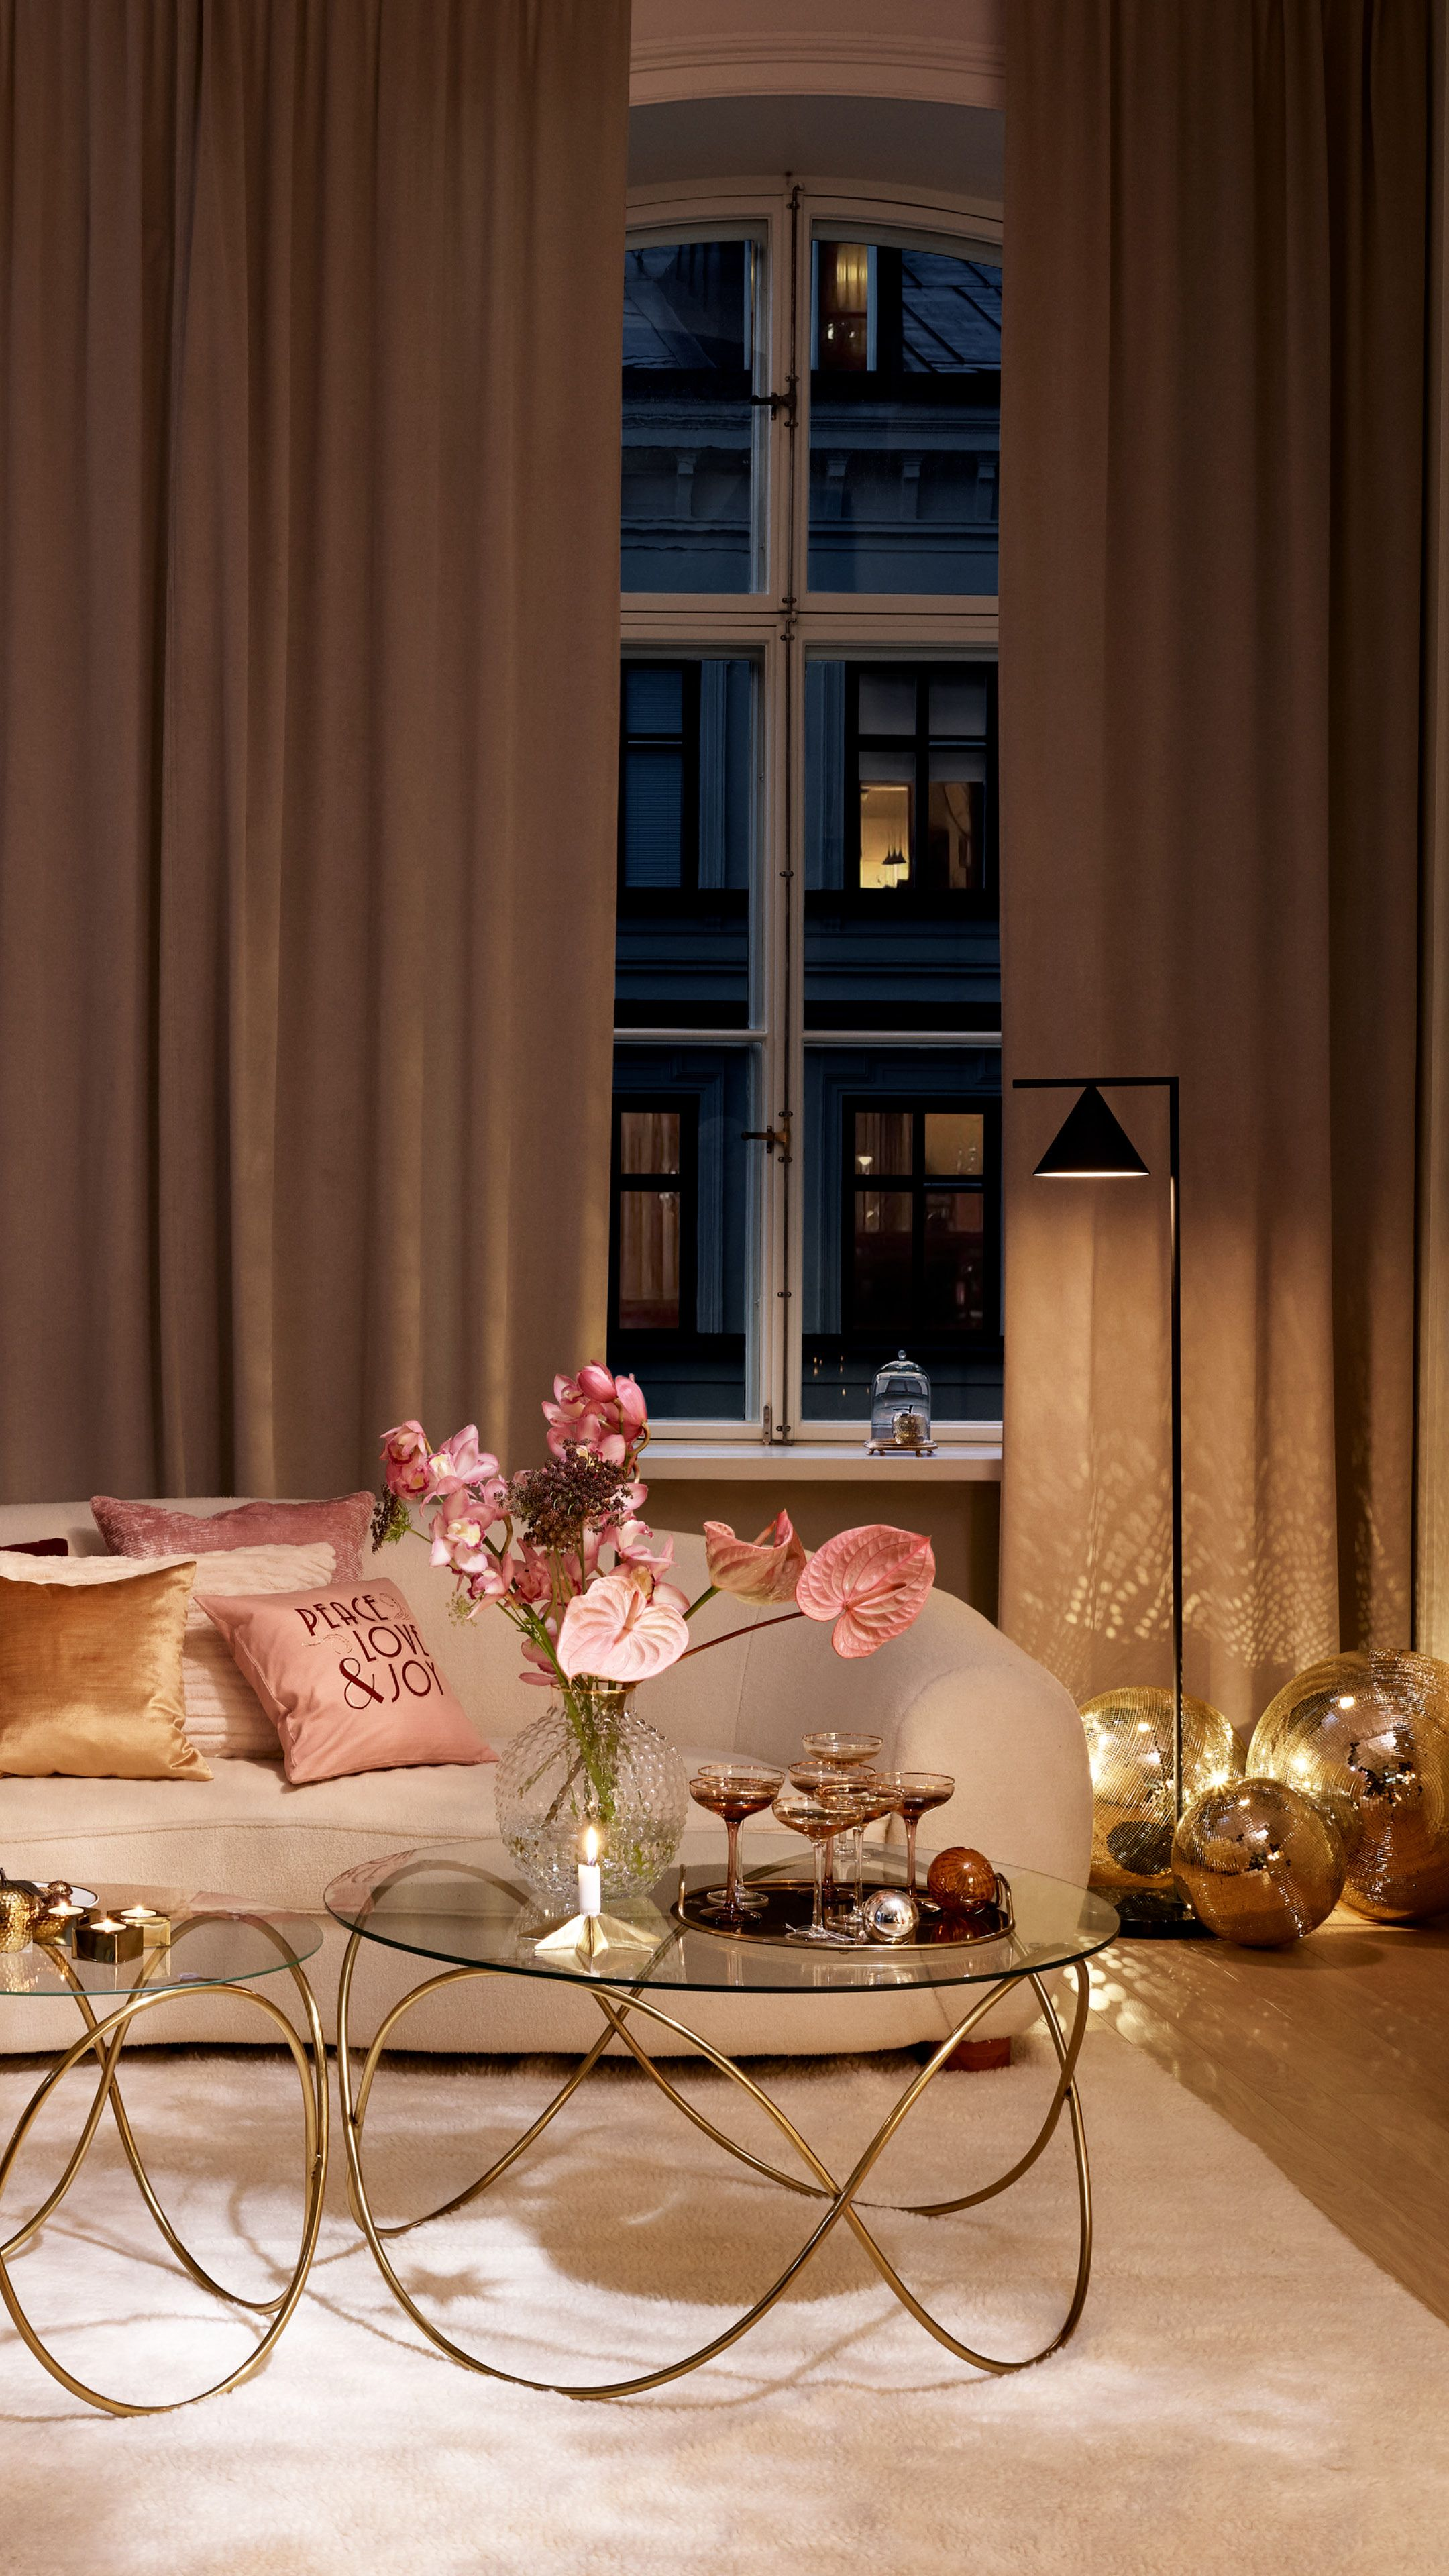 Bedroom Creator Online: Throwing A Party? Create A Festive Ambiance With